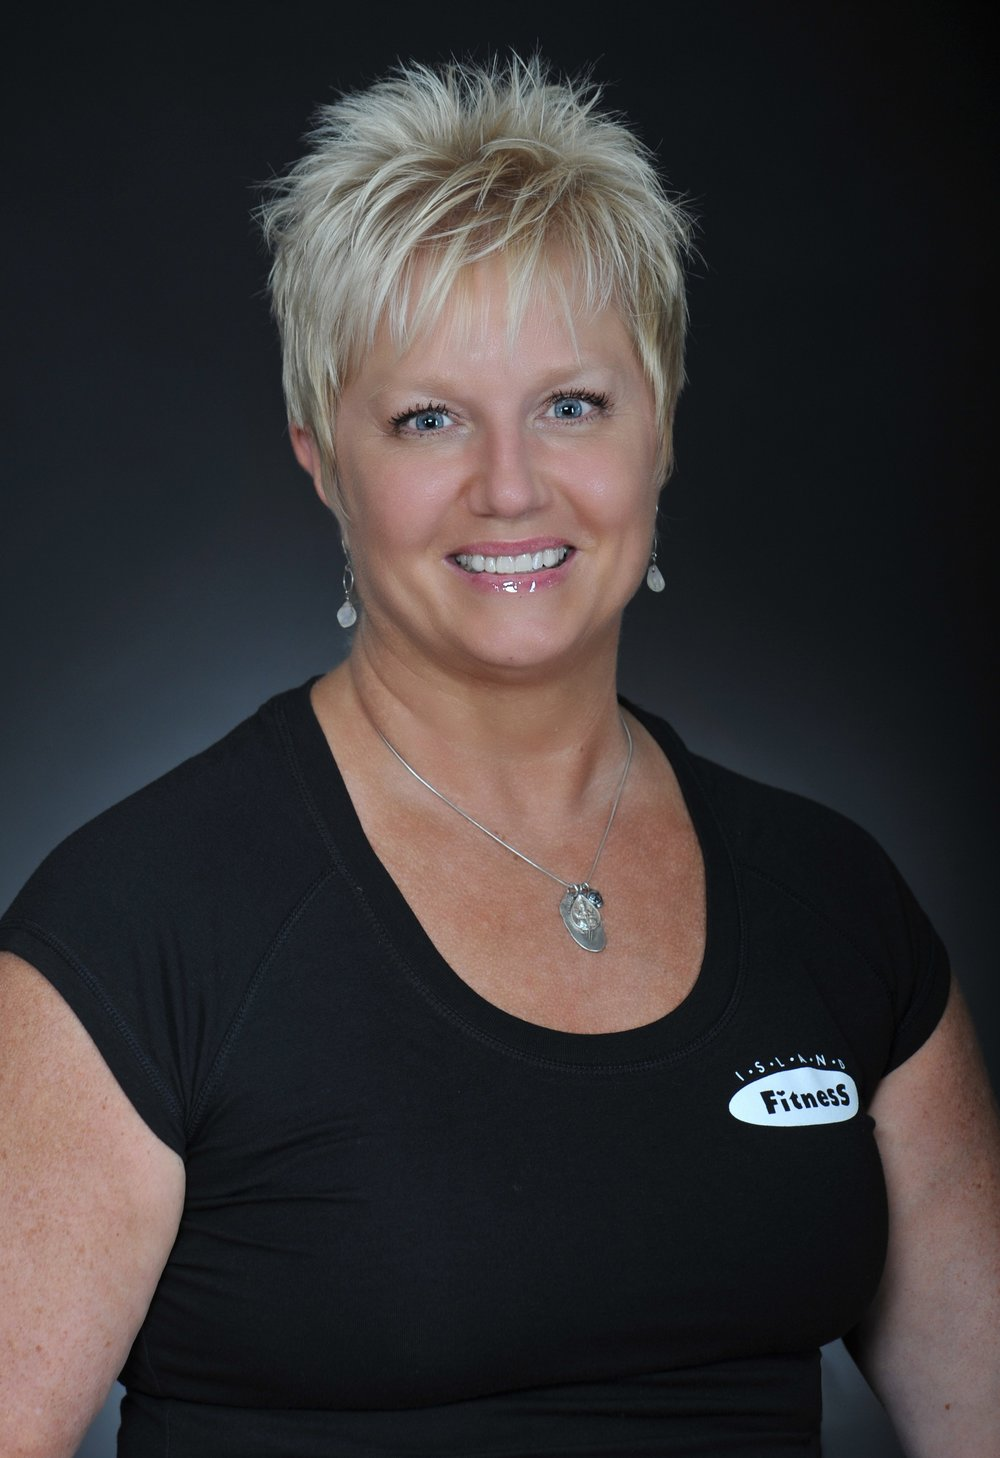 SHERRY ECKERT | Business Manager